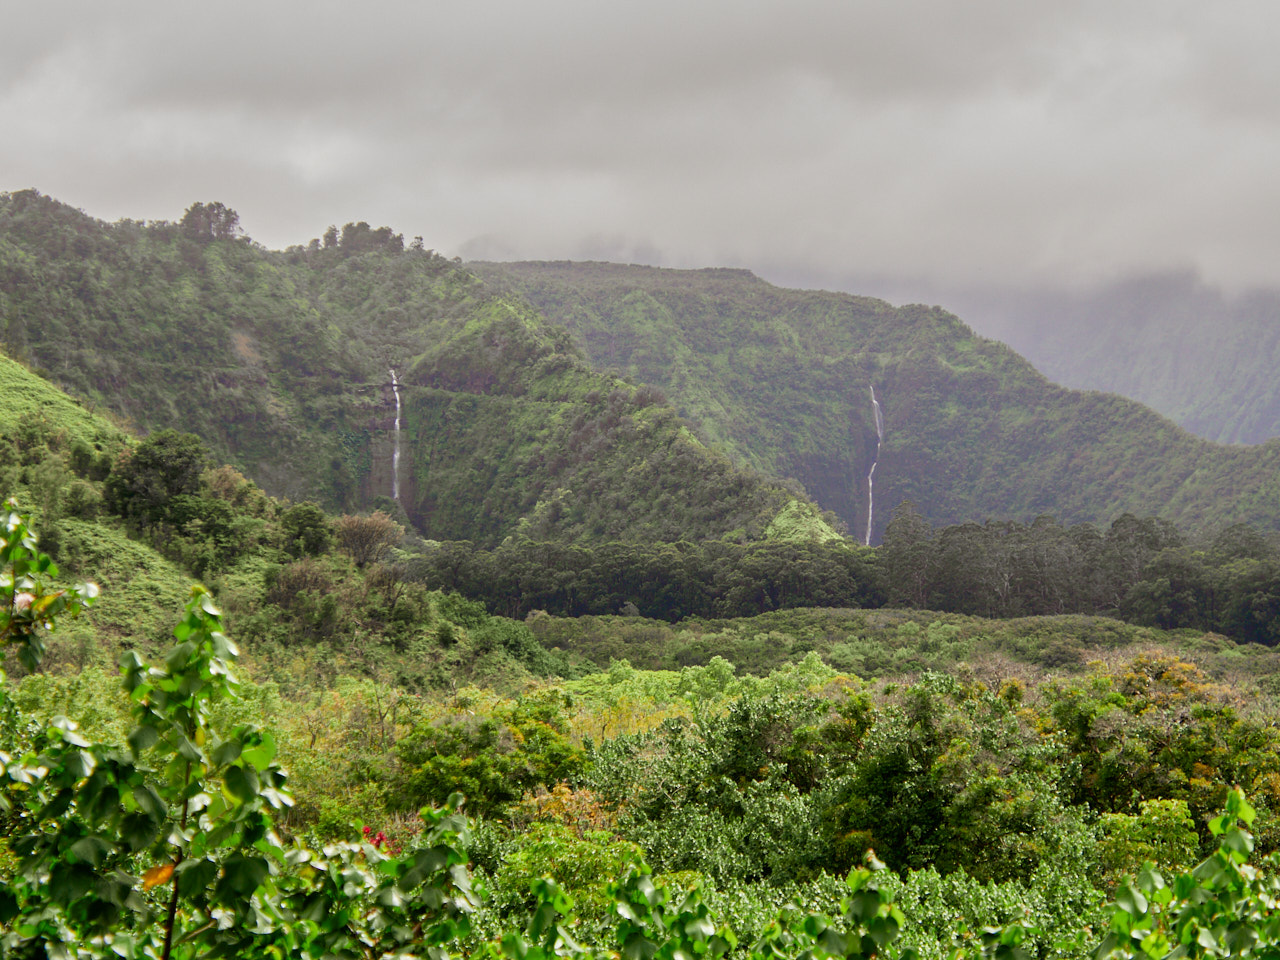 These dual waterfalls are the main attraction at the Wailua State Wayside.